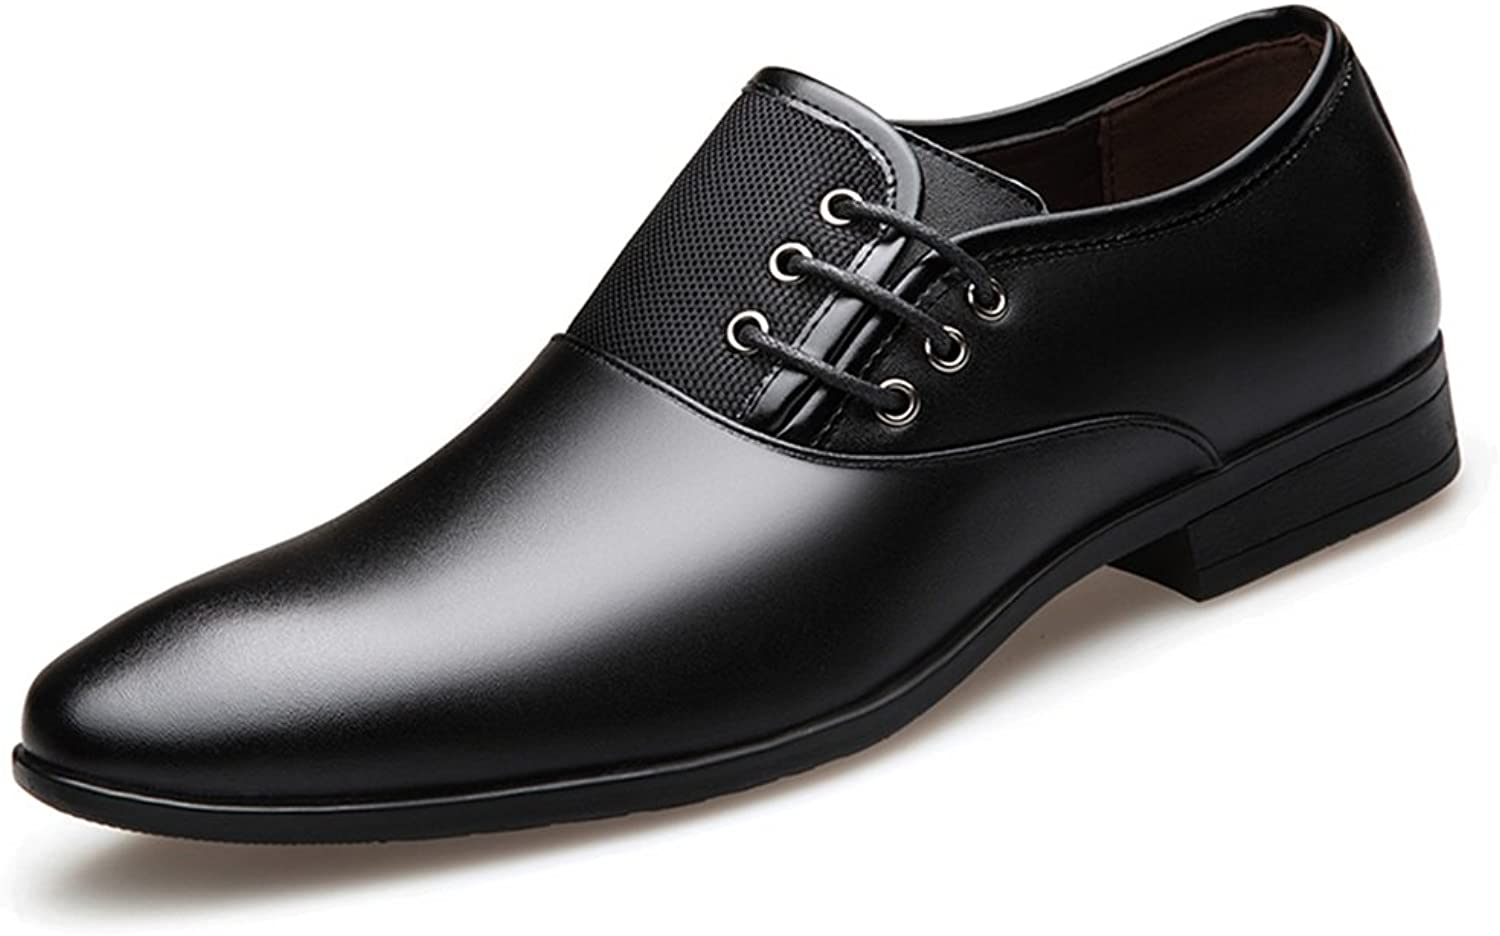 Amazn Men's shoes, Mens Business shoes Leather Pointed Toe Formal shoes Dress Wedding shoes Large Size Black, Brown Spring Fall,shoes